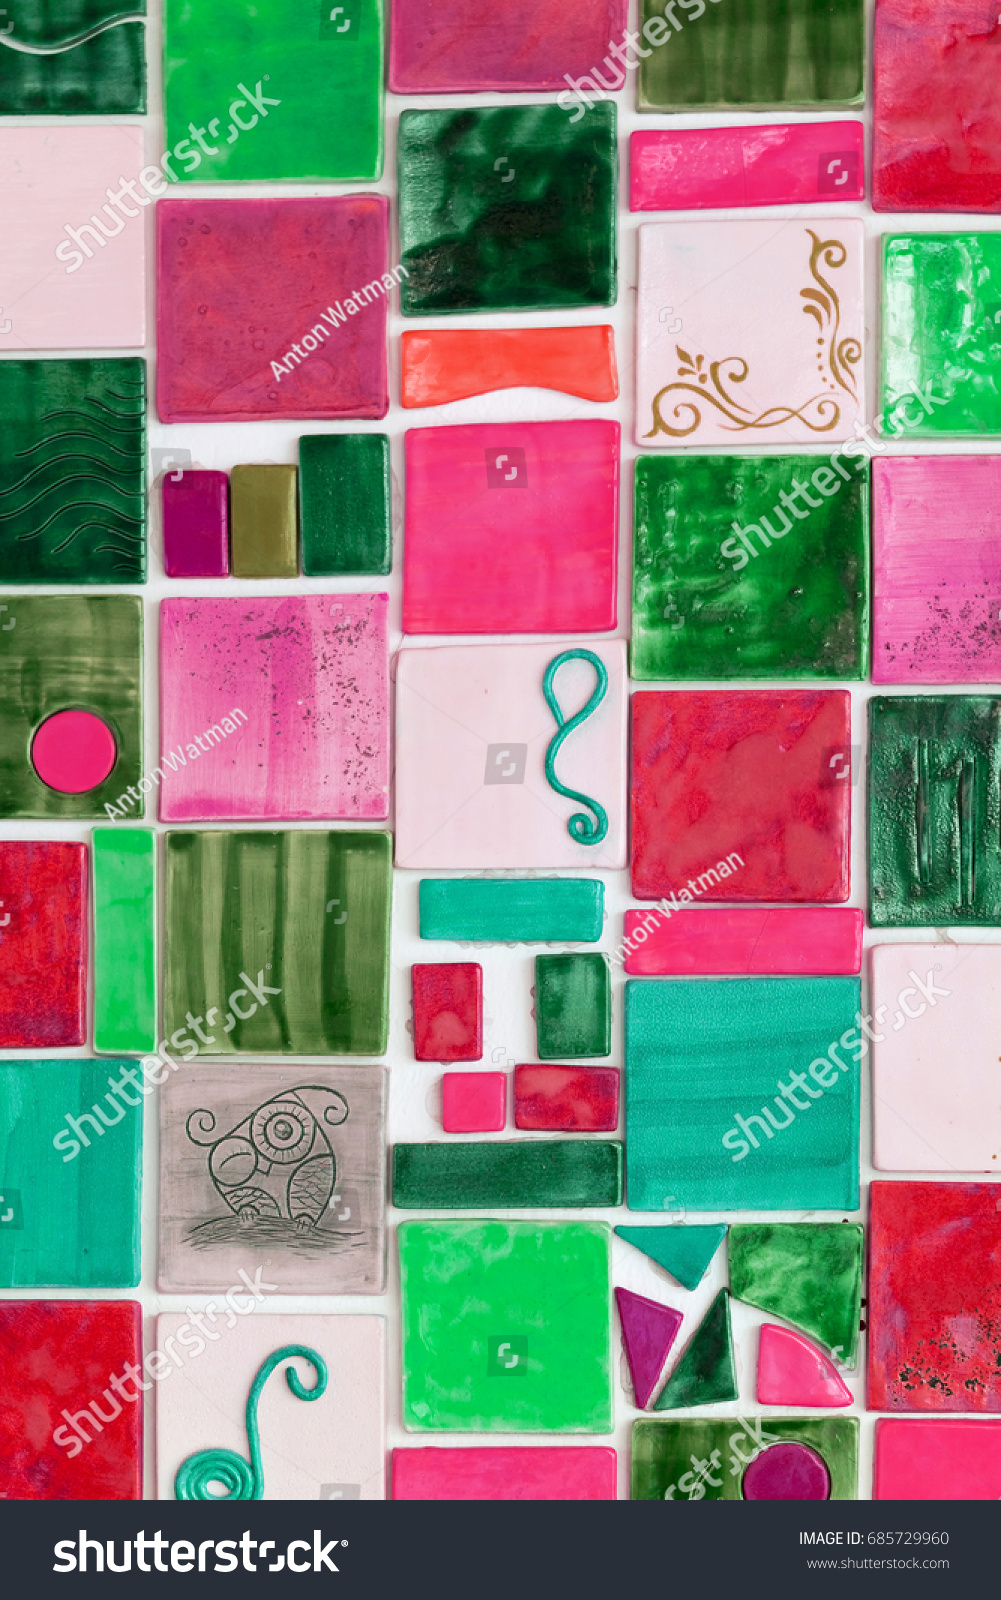 Green pink ceramic tile background stock photo 685729960 green and pink ceramic tile background doublecrazyfo Images